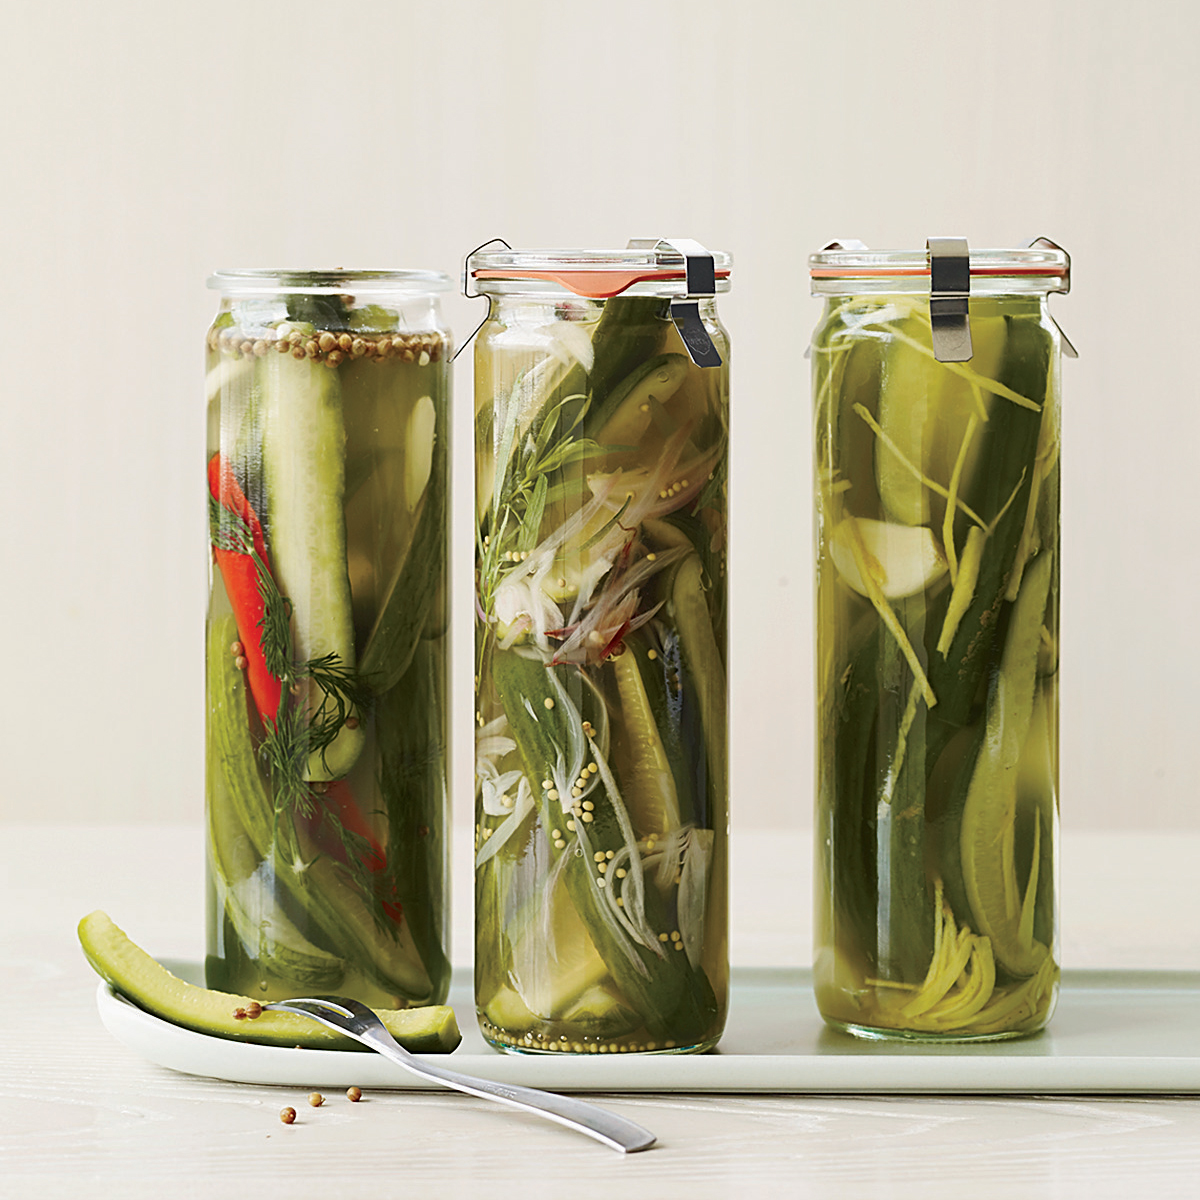 200908-r-winey-briny-pickles.jpg